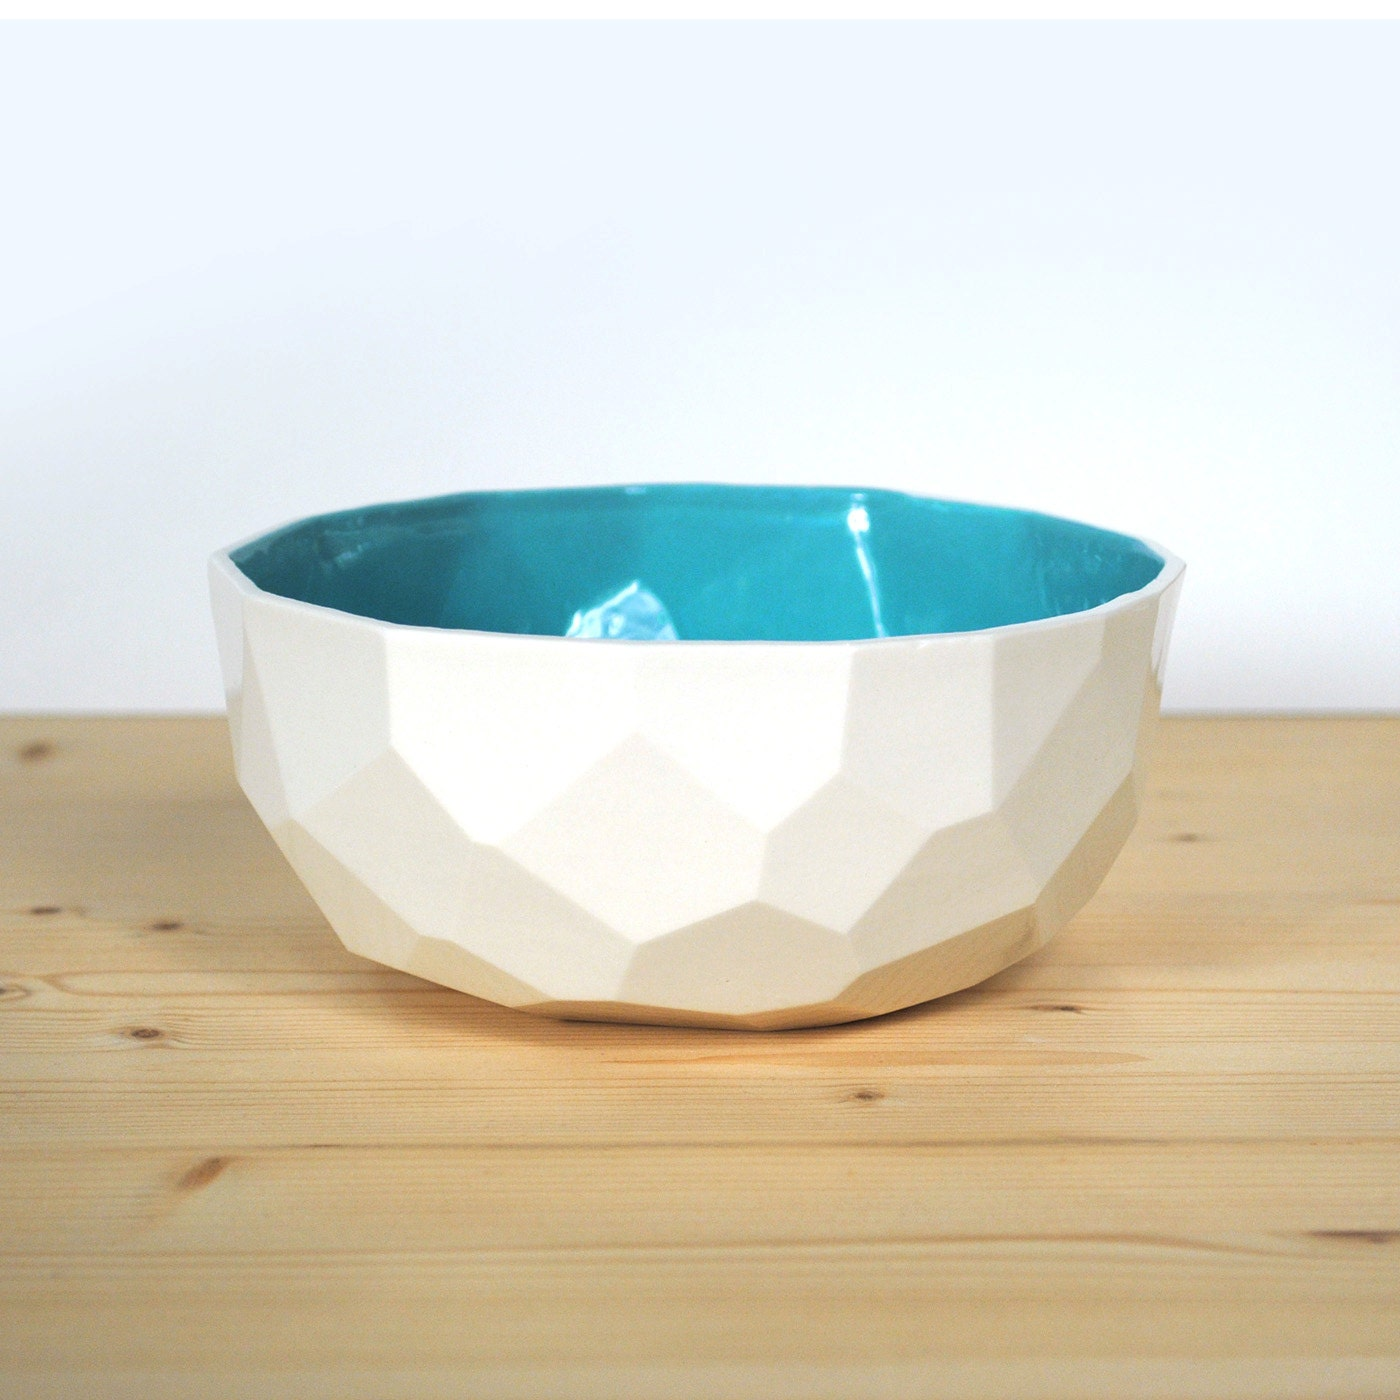 modern ceramic breakfast and soup bowl handmade in polygons out of porcelain facetted design